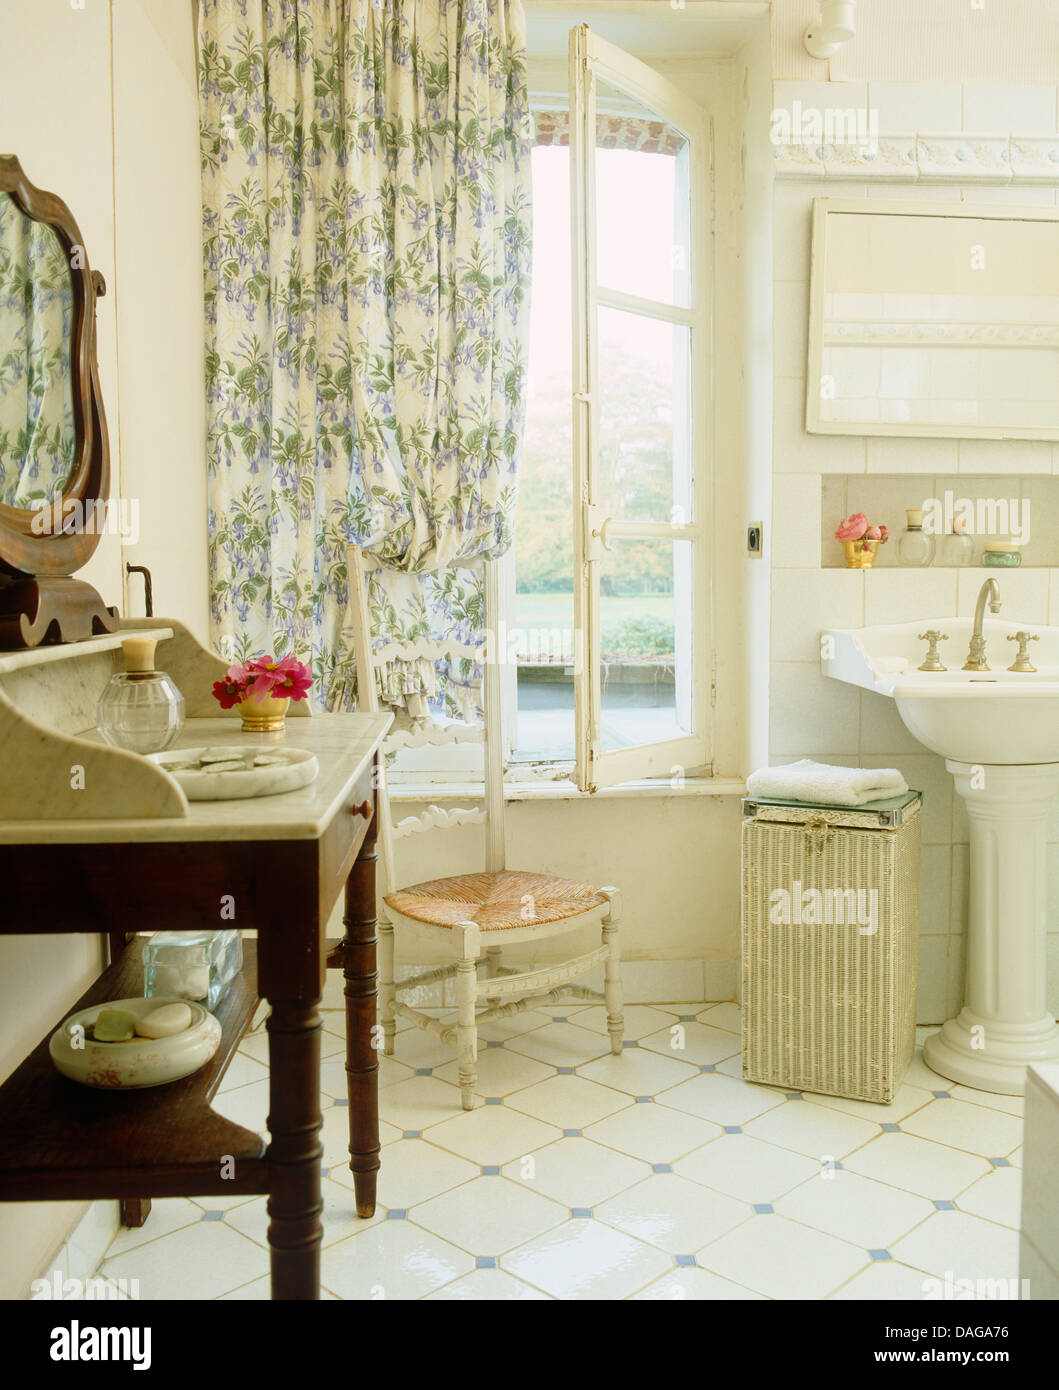 Blue And White Bathrooms Country: Marble Topped Washstand And White Tiled Floor In French